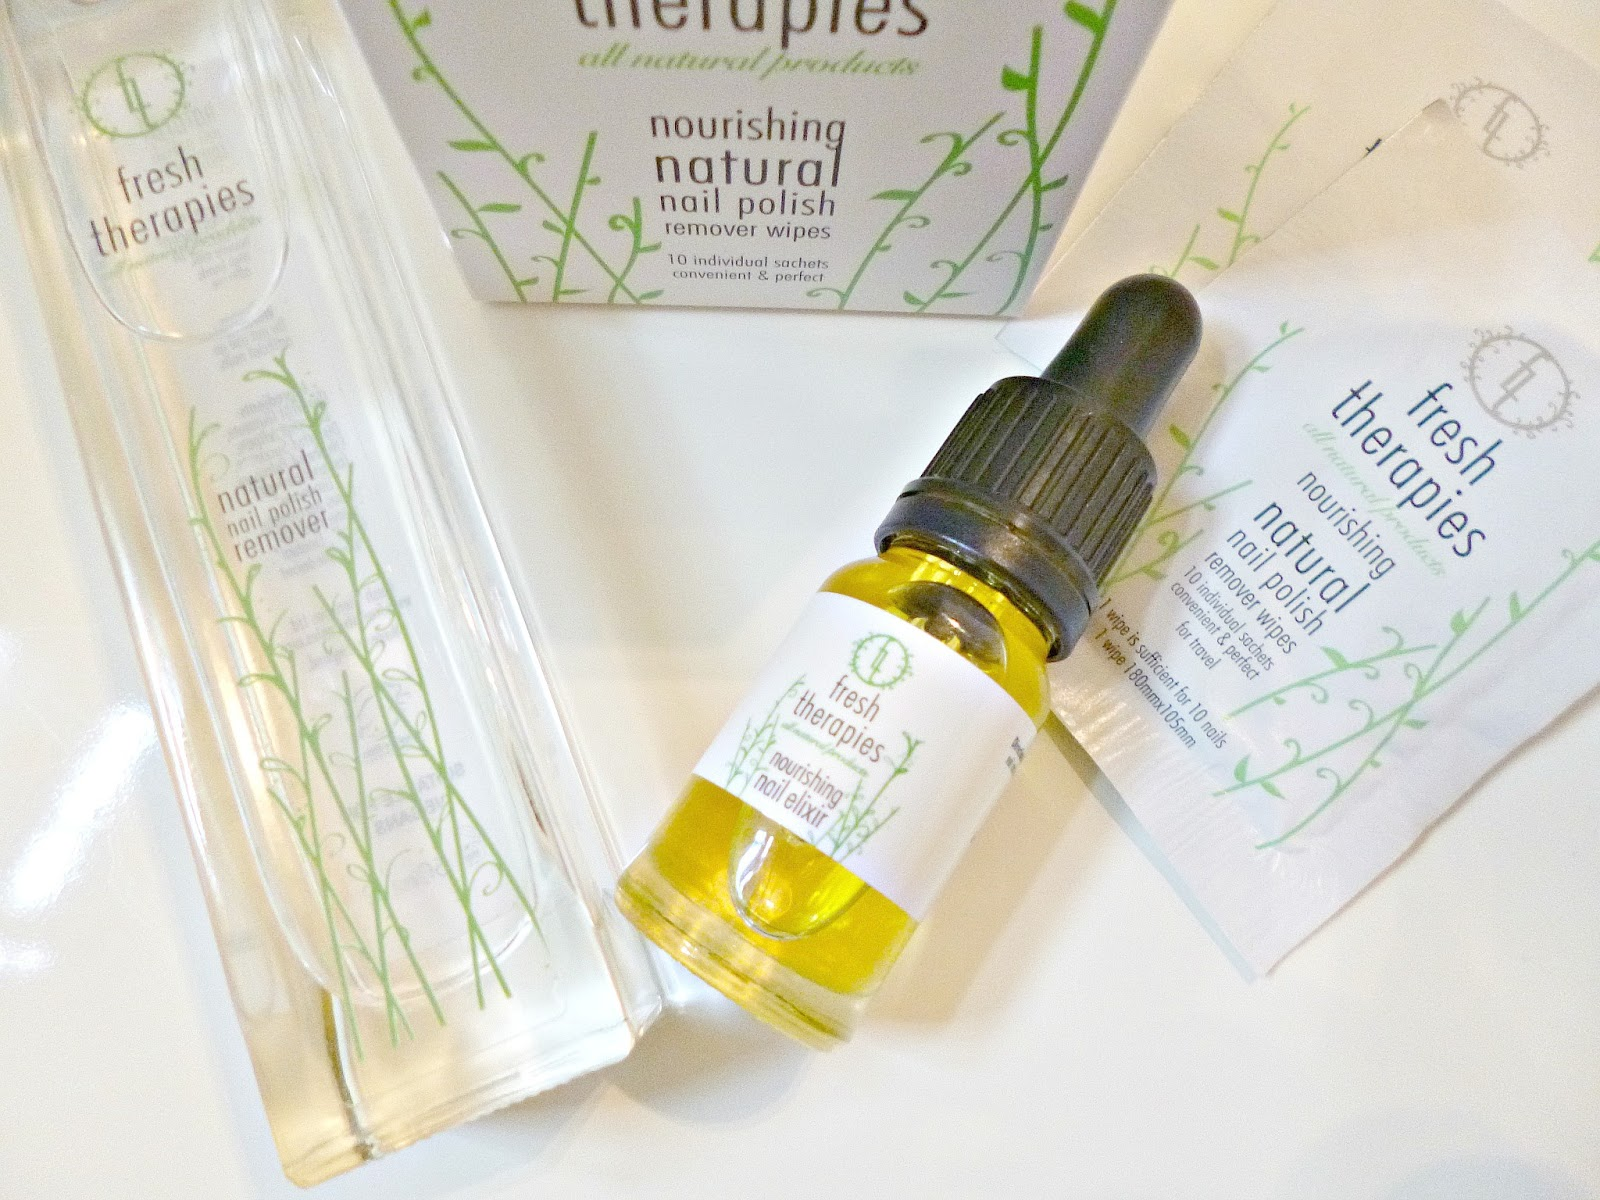 Fresh Therapies Nail care review - Ana goes green...